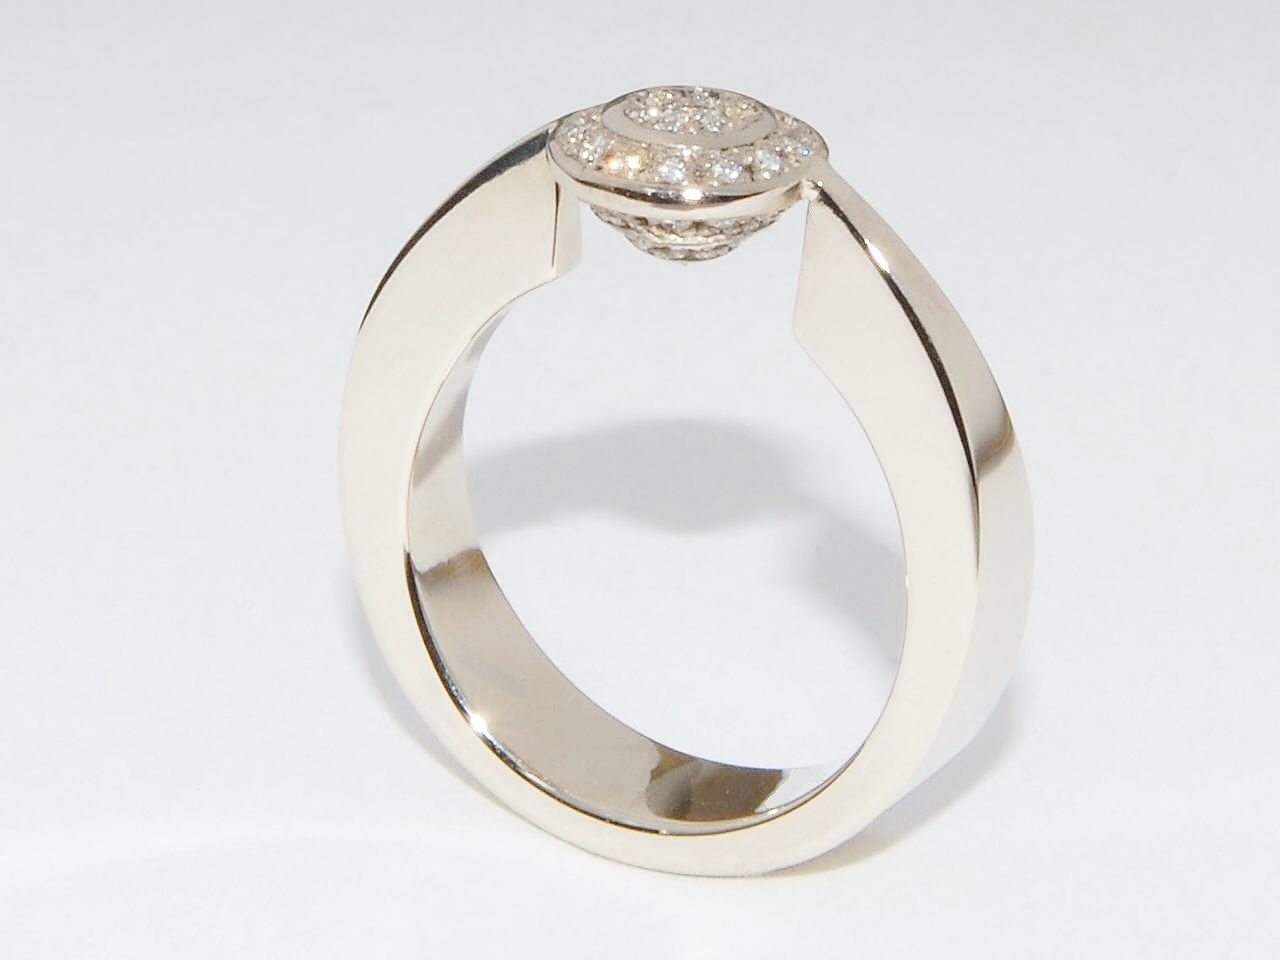 Traditional ring made modern